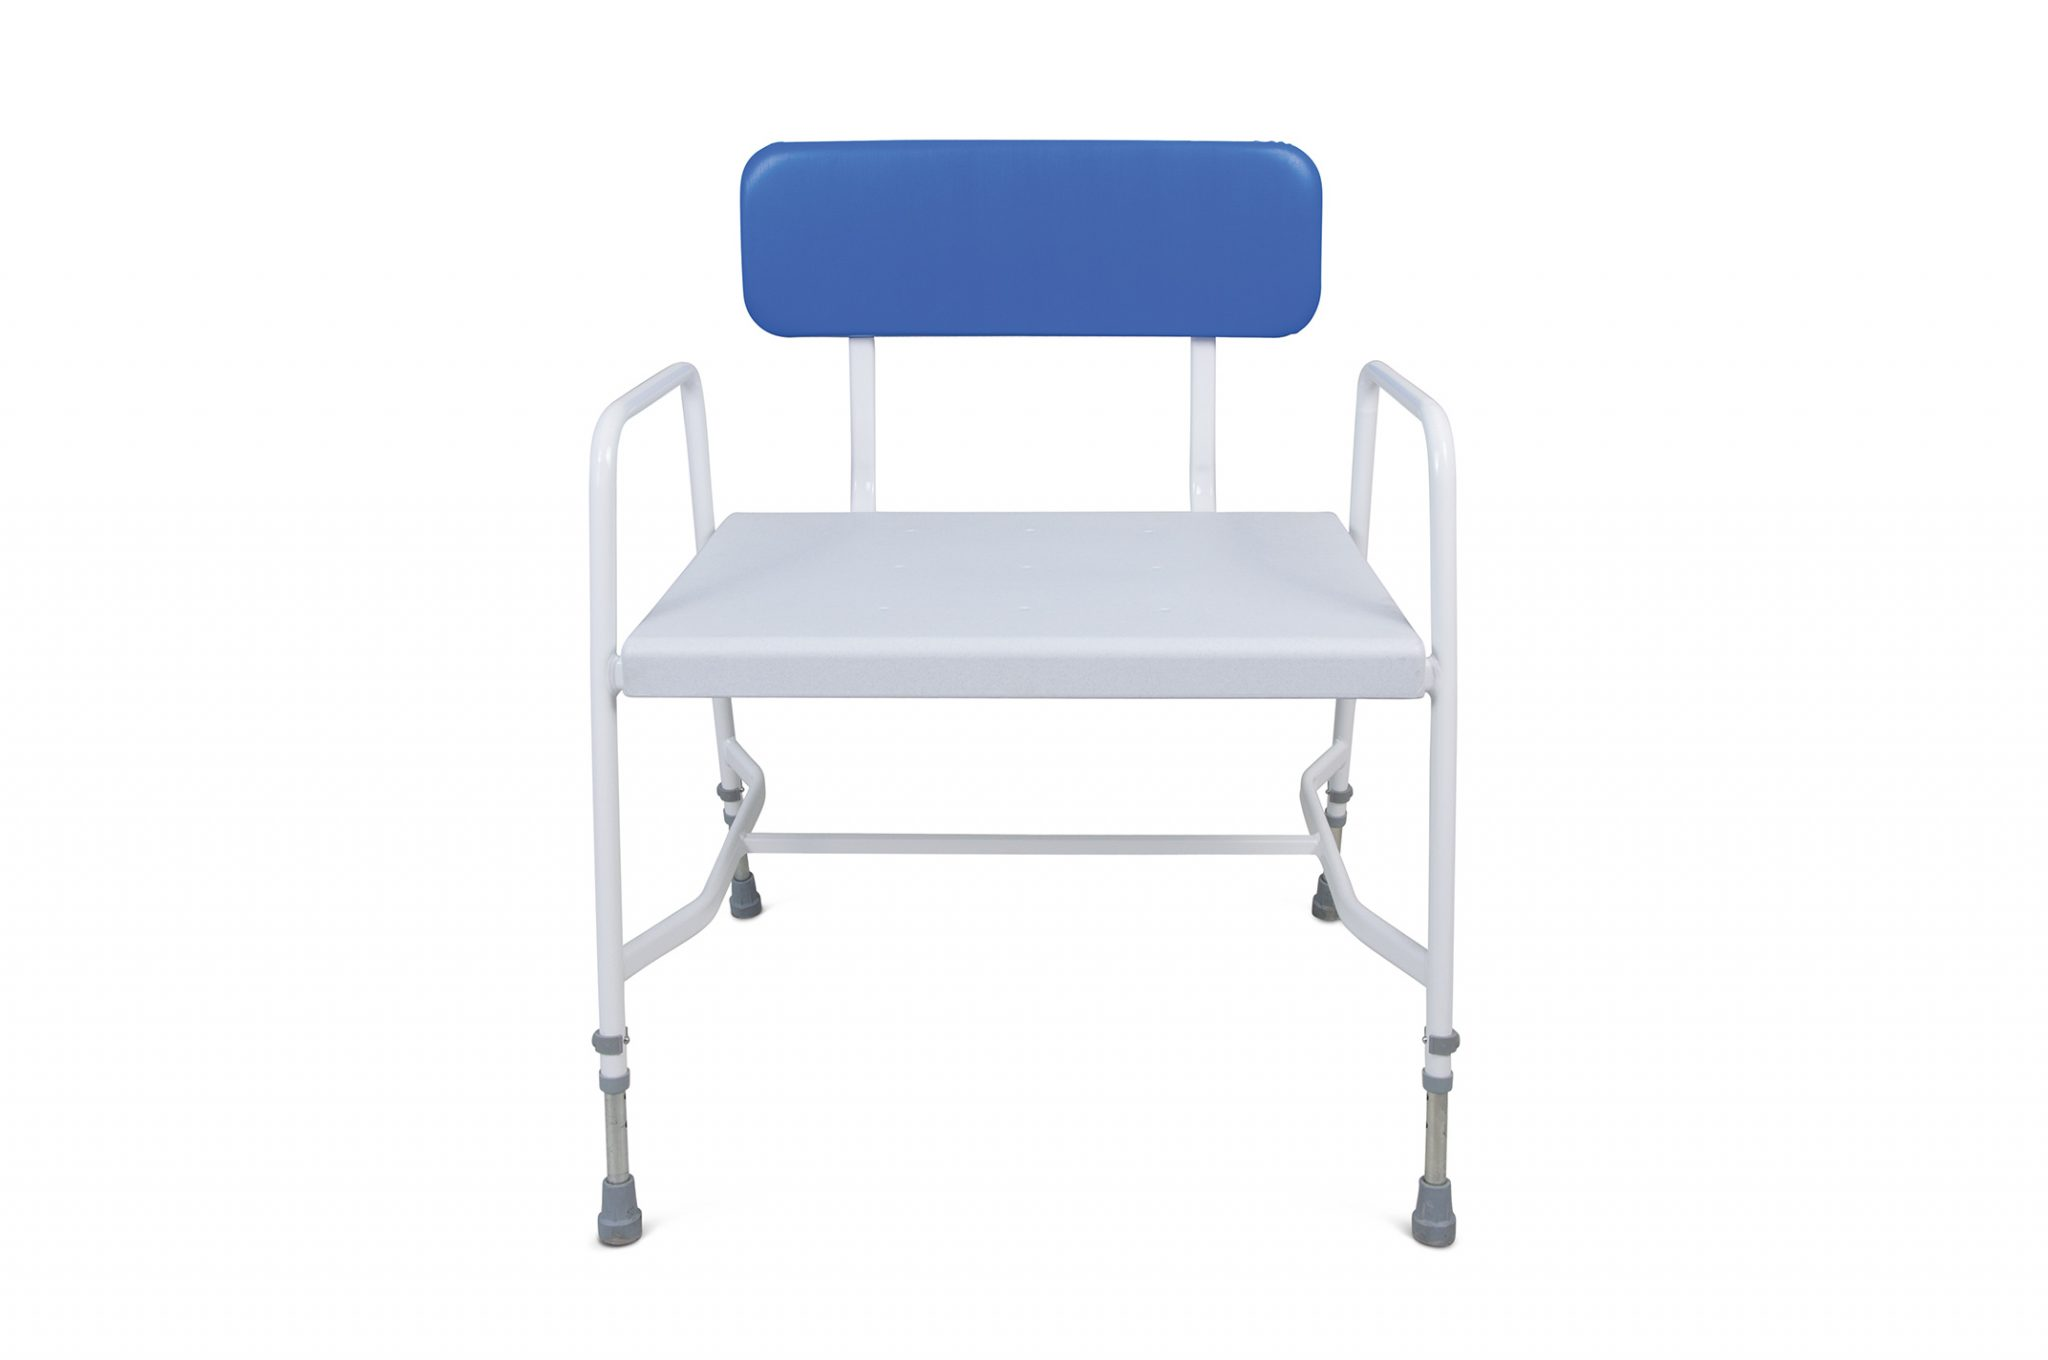 M281 Mediatric™ Shower Chairs Cefndy Healthcare